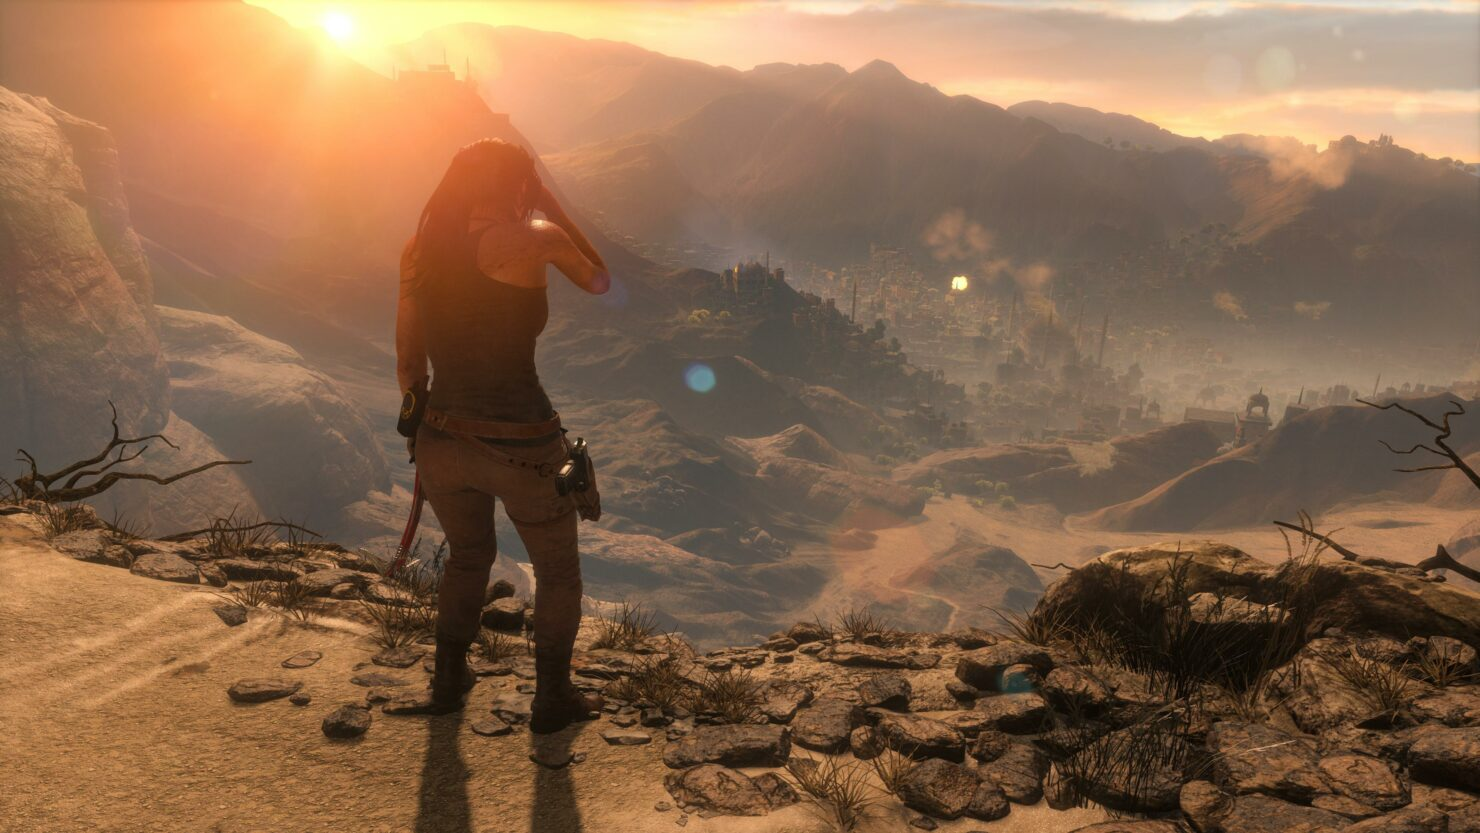 rise-of-the-tomb-raider_pc_4k_pcmr_31